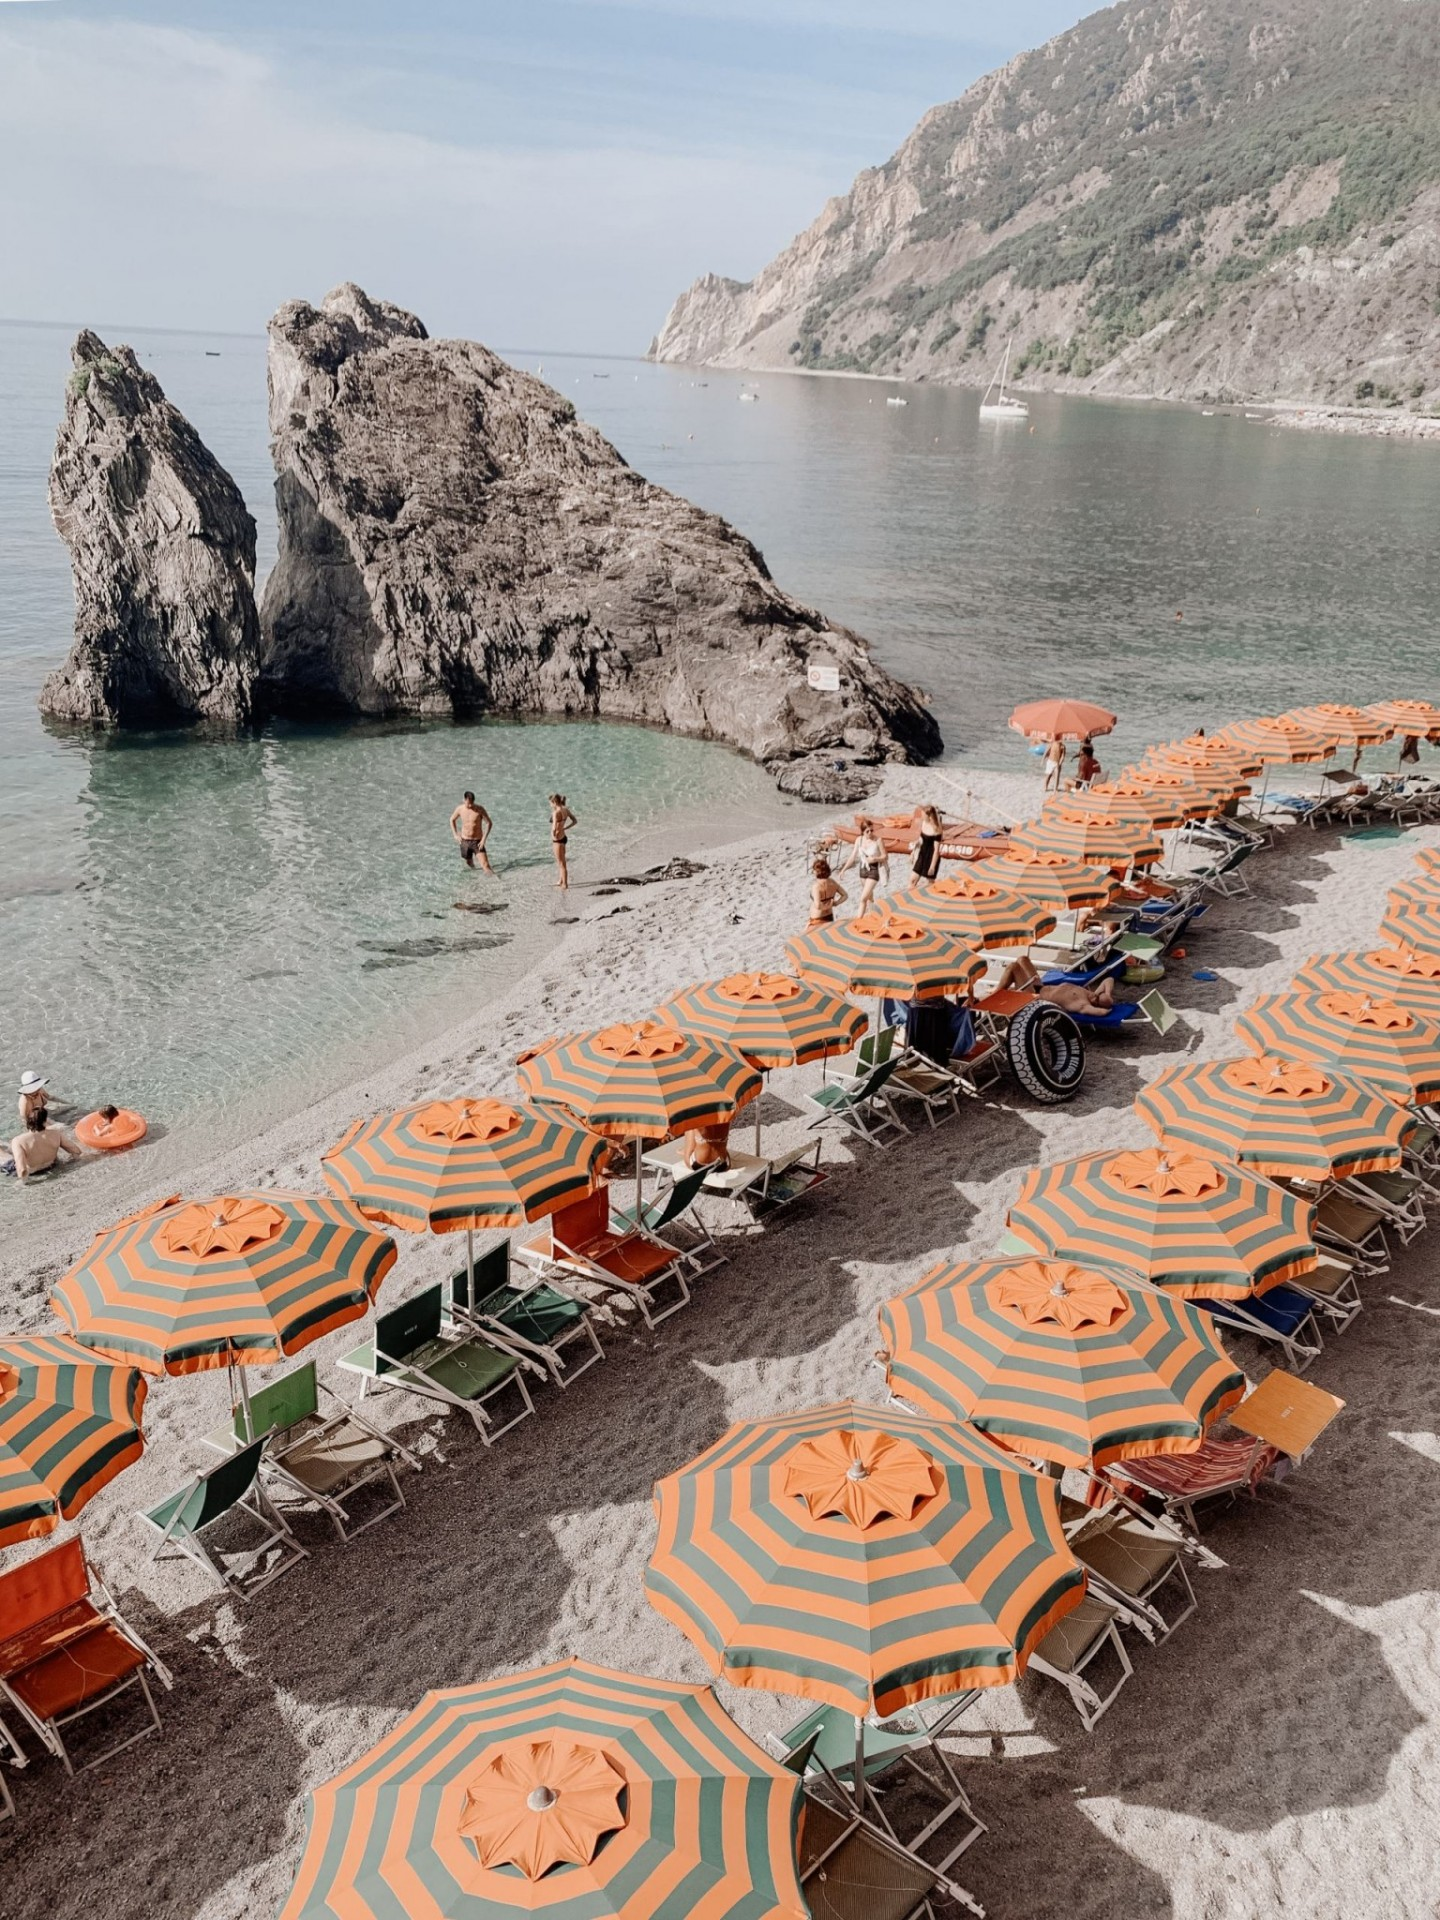 Lifestyle blogger Mollie Moore shares a Cinque Terre travel guide | Travel Guide: Things to do in Cinque Terre, Italy by popular London travel blogger, Mollie Moore: image of a beach at Cinque Terre, Italy.